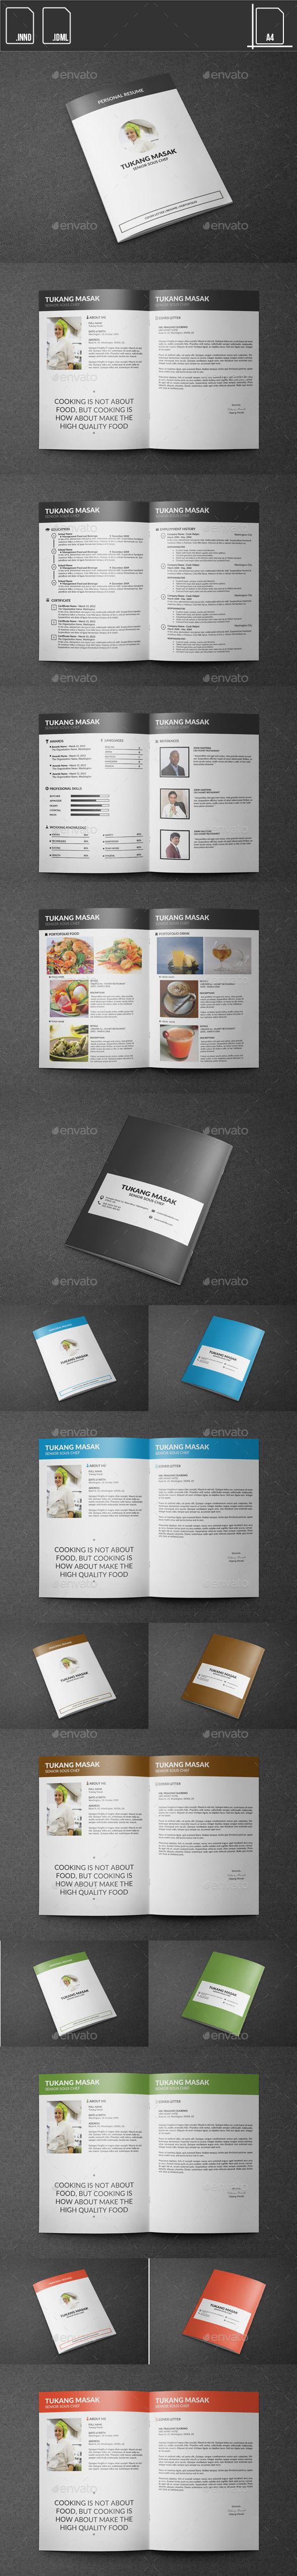 Resume Chef Booklet   Modern resume, Resume cv and Template